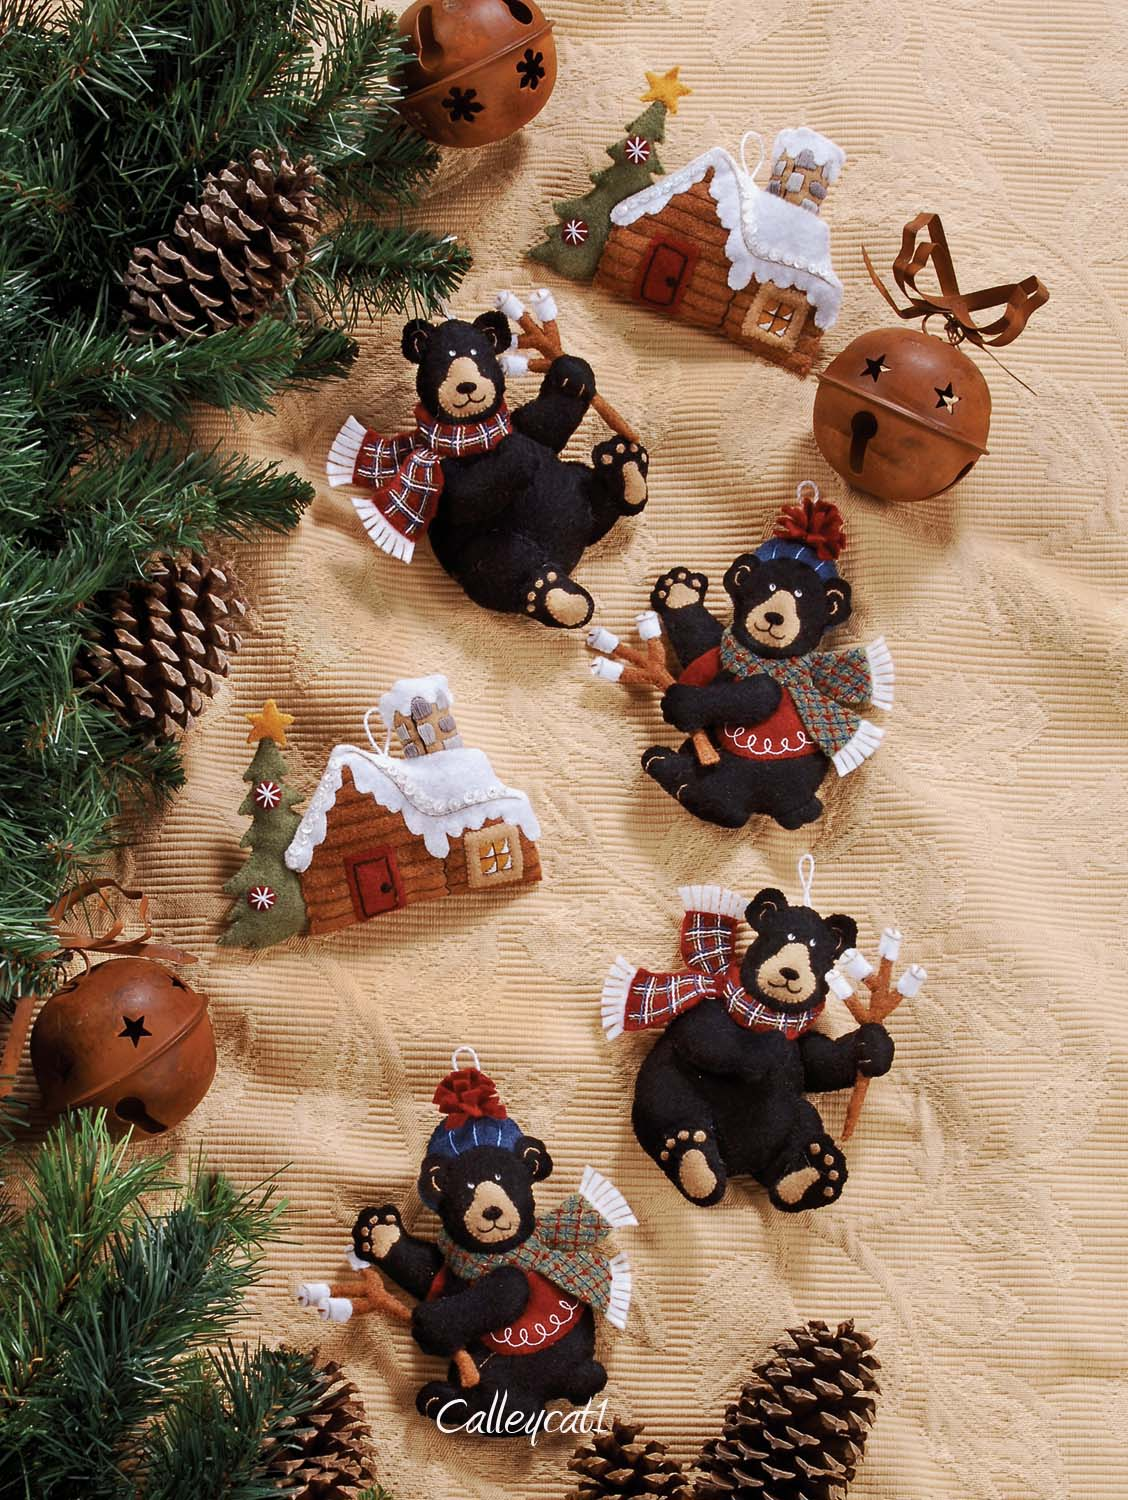 black bear bonfire bucilla felt ornament kit 85460 - Christmas Decoration Kits